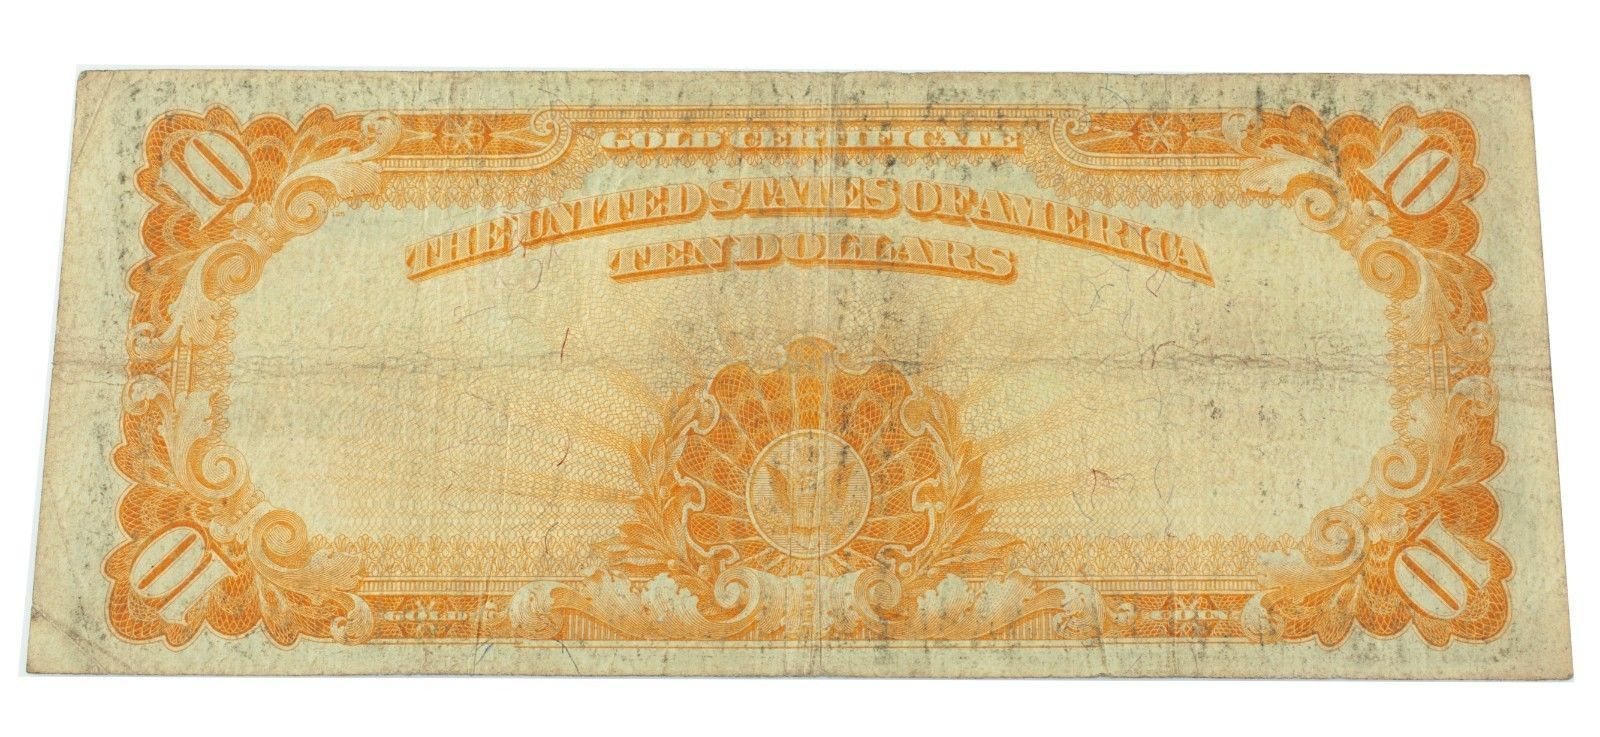 1922 $10 Us Gold Note in Fine Condition Fr. 1173